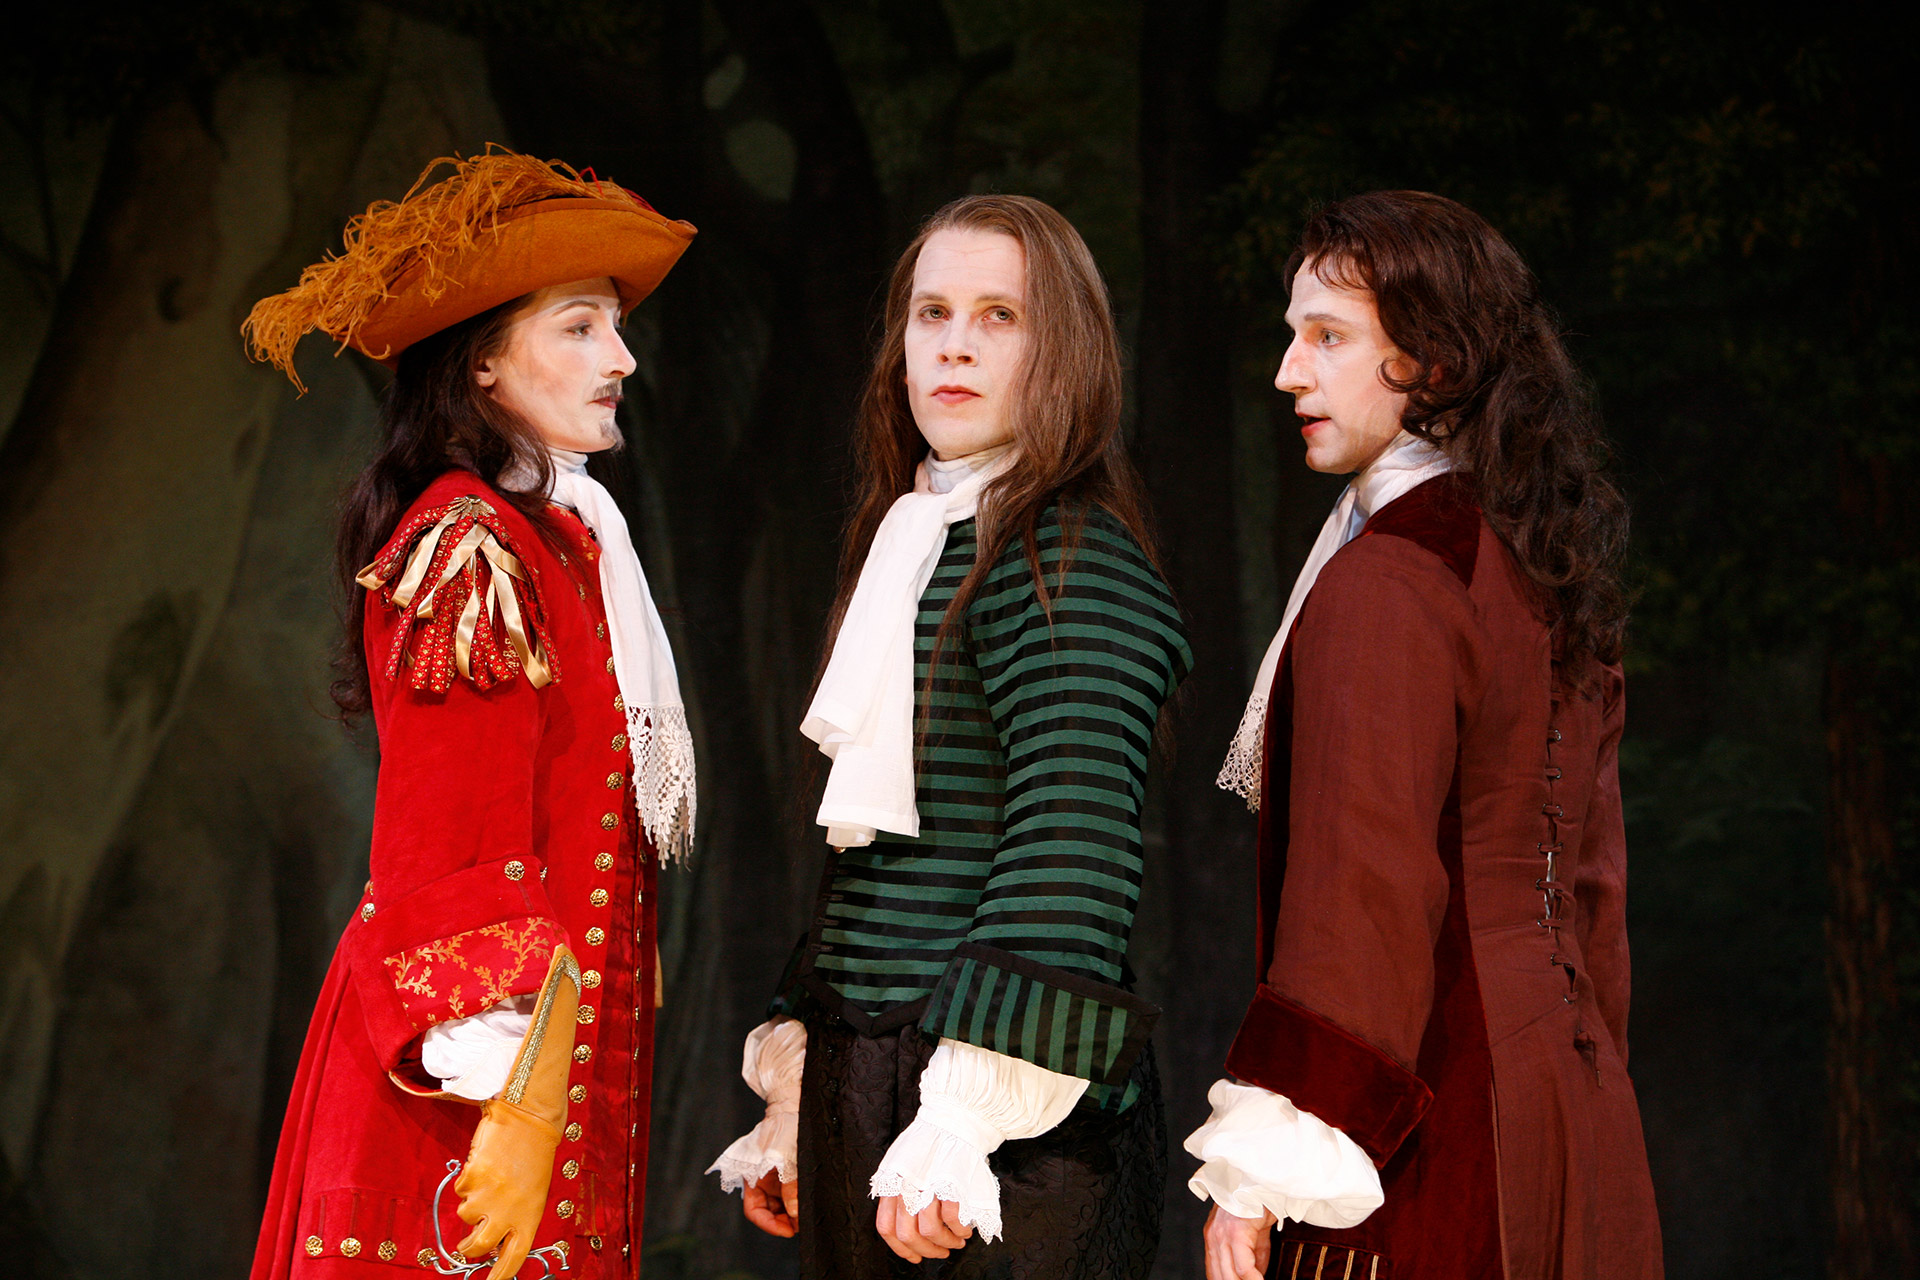 Francesca Faridany as Don Alonso, Jeremy Webb as Don Juan and Daniel Harray as Don Carlos in the Shakespeare Theatre Company's production of DON JUAN, translated, adapted and directed by Stephen Wadsworth. Photo by Richard Termine.